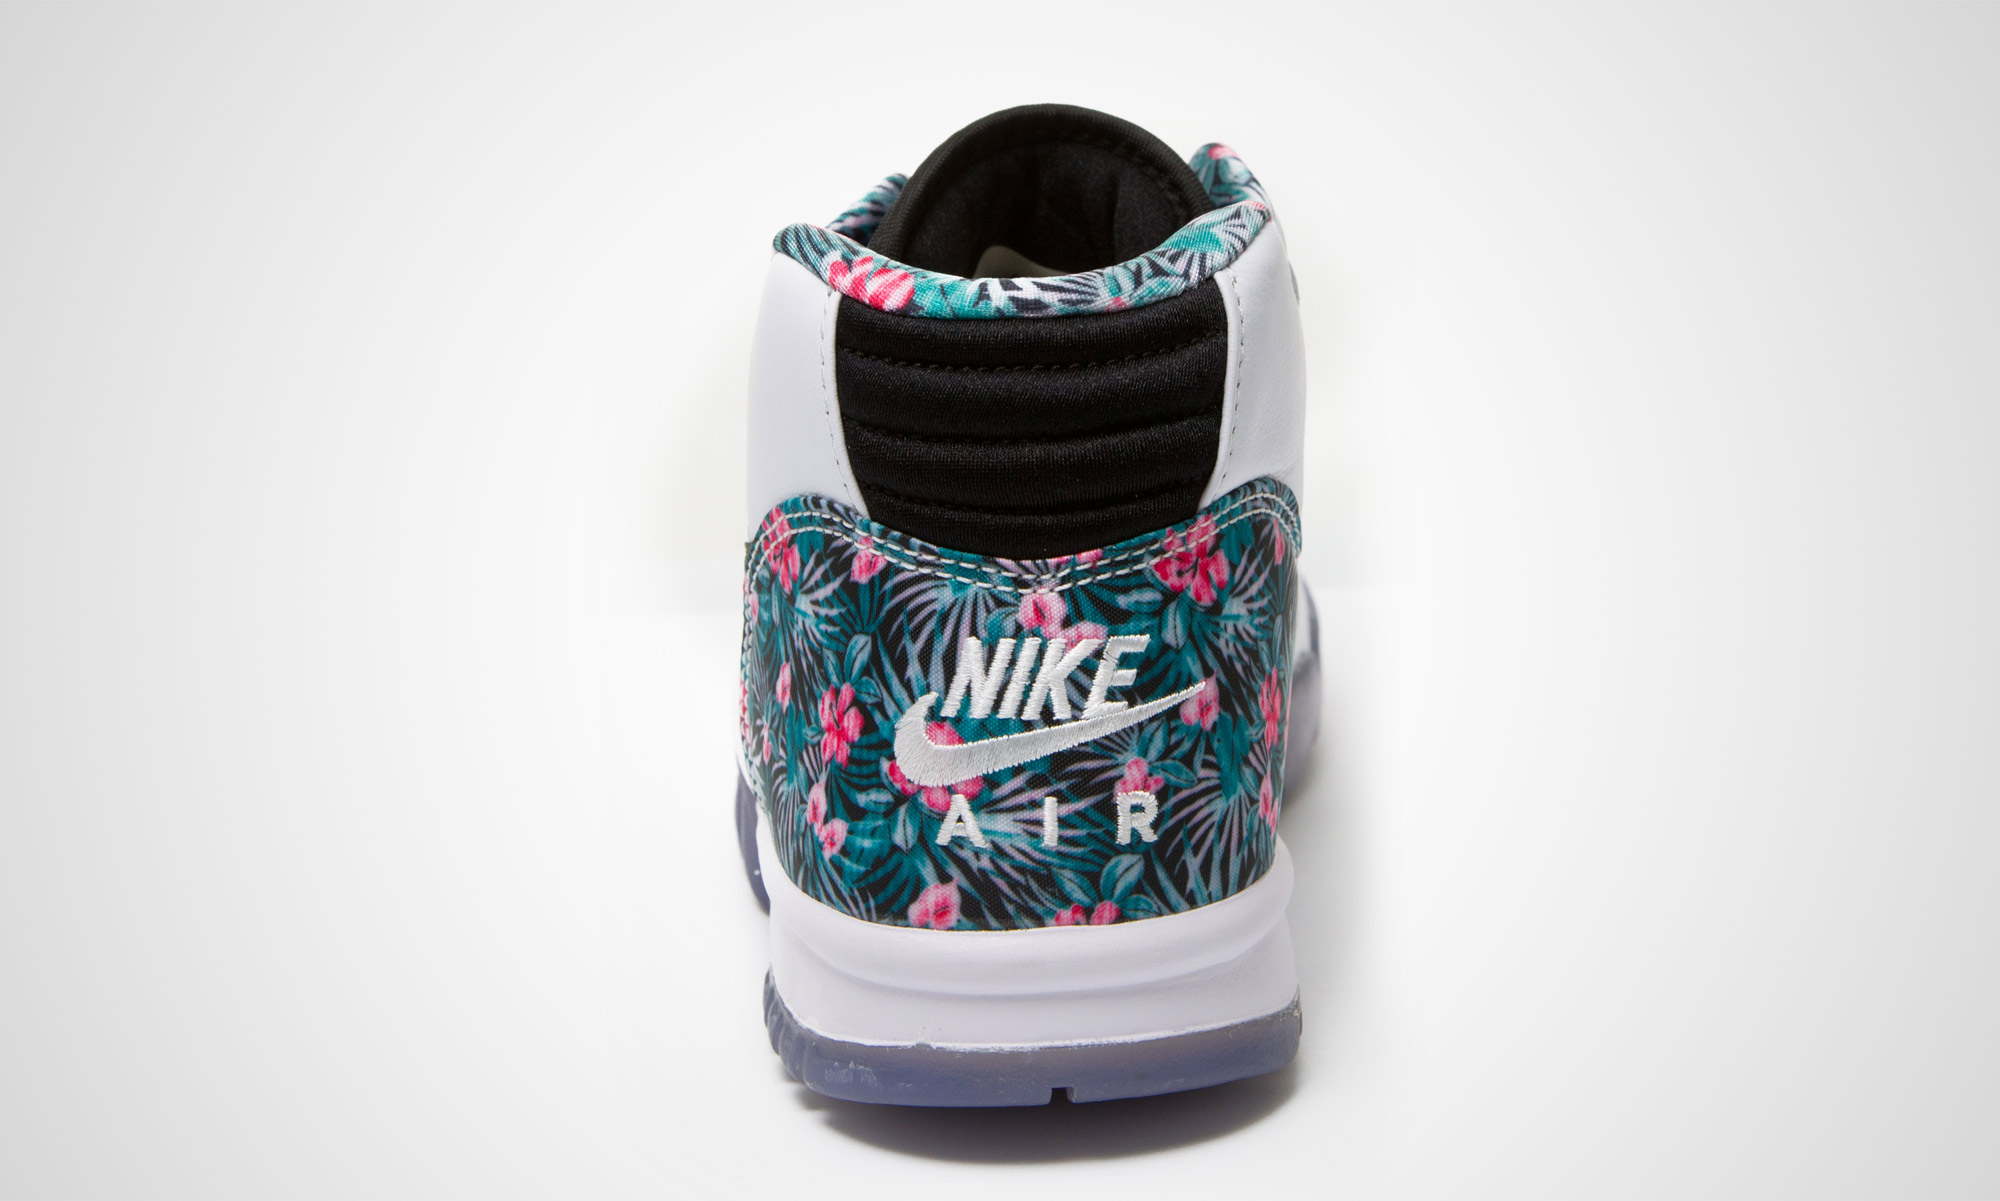 Nike Air Trainer 1 MID PRM QS Pro Bowl 11